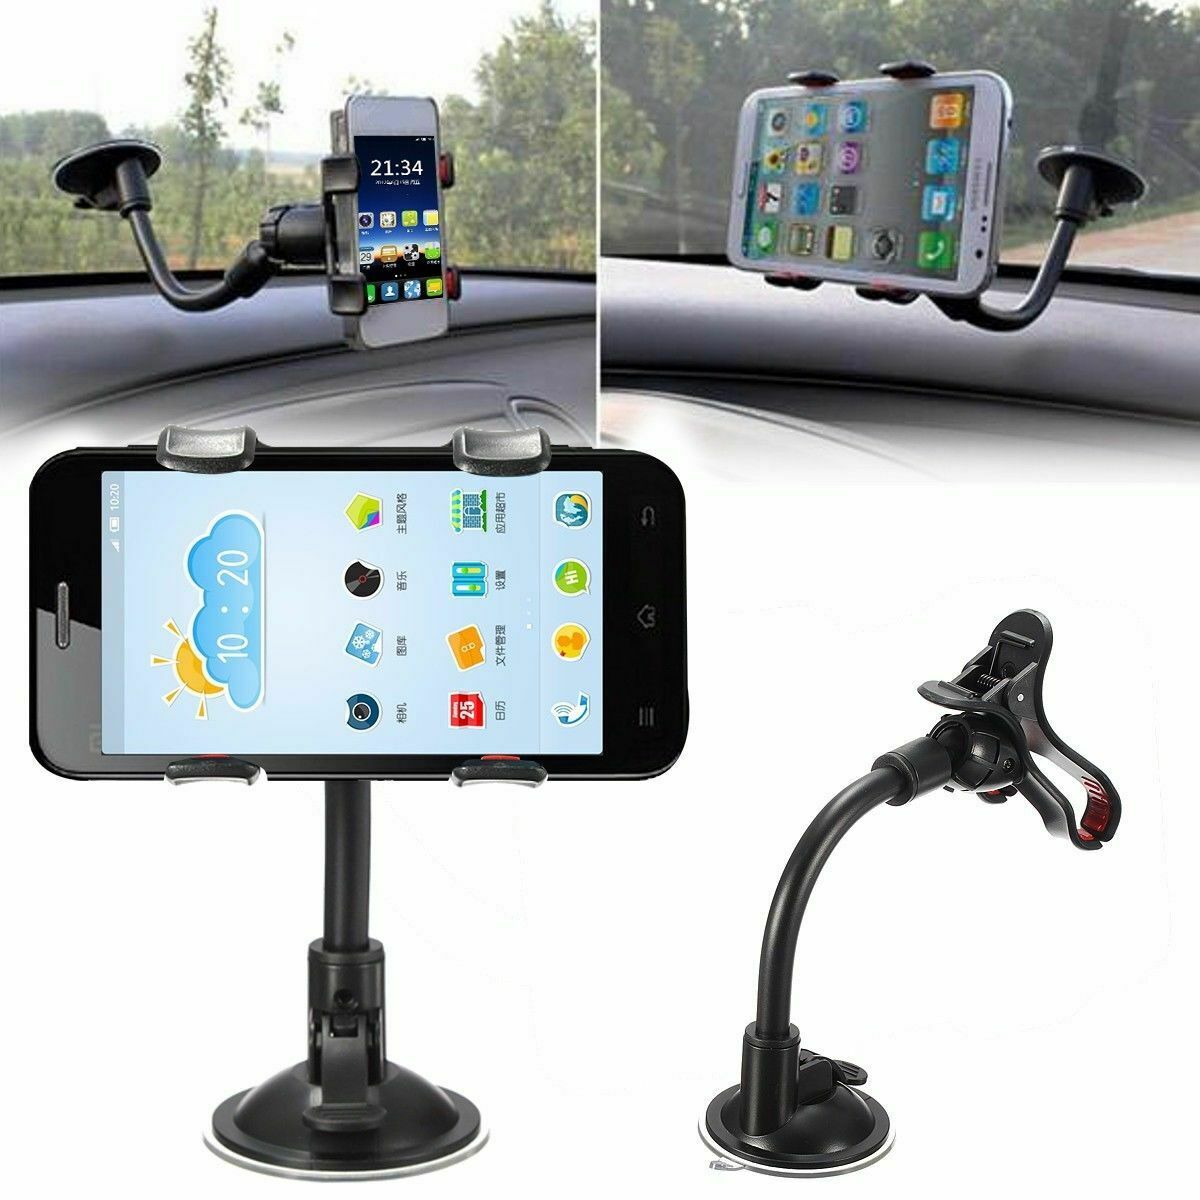 Universal 360 Degree Rotating Suction Cup Car Windshield Mobile Phone Holder GPS Stand Mount Cradle For Iphone Samsung Huawei